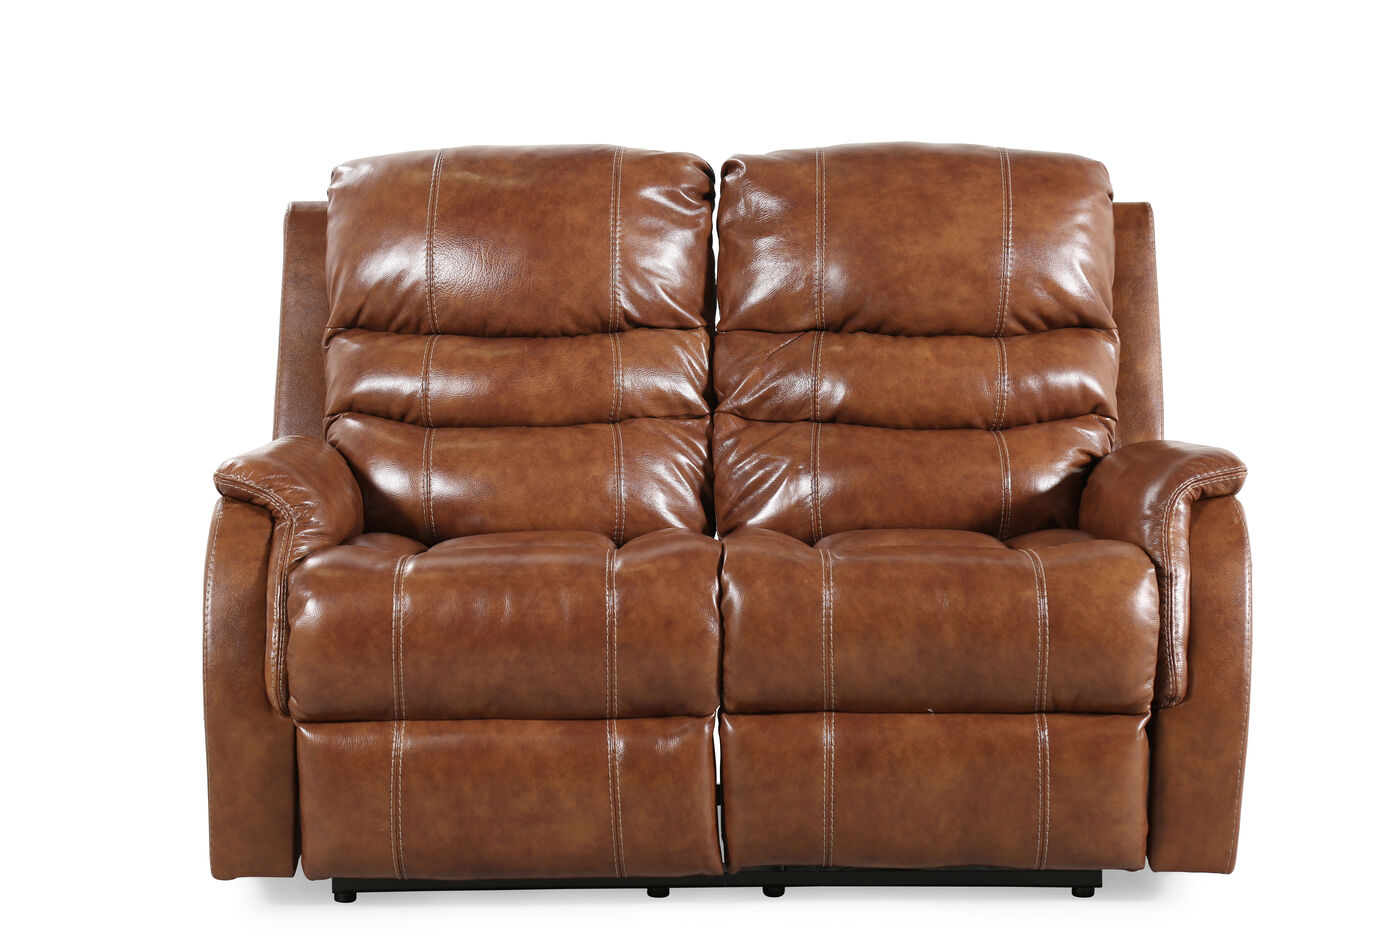 Power Reclining Transitional 60 Loveseat With Adjustable Headrest In Nutmeg Brown Mathis